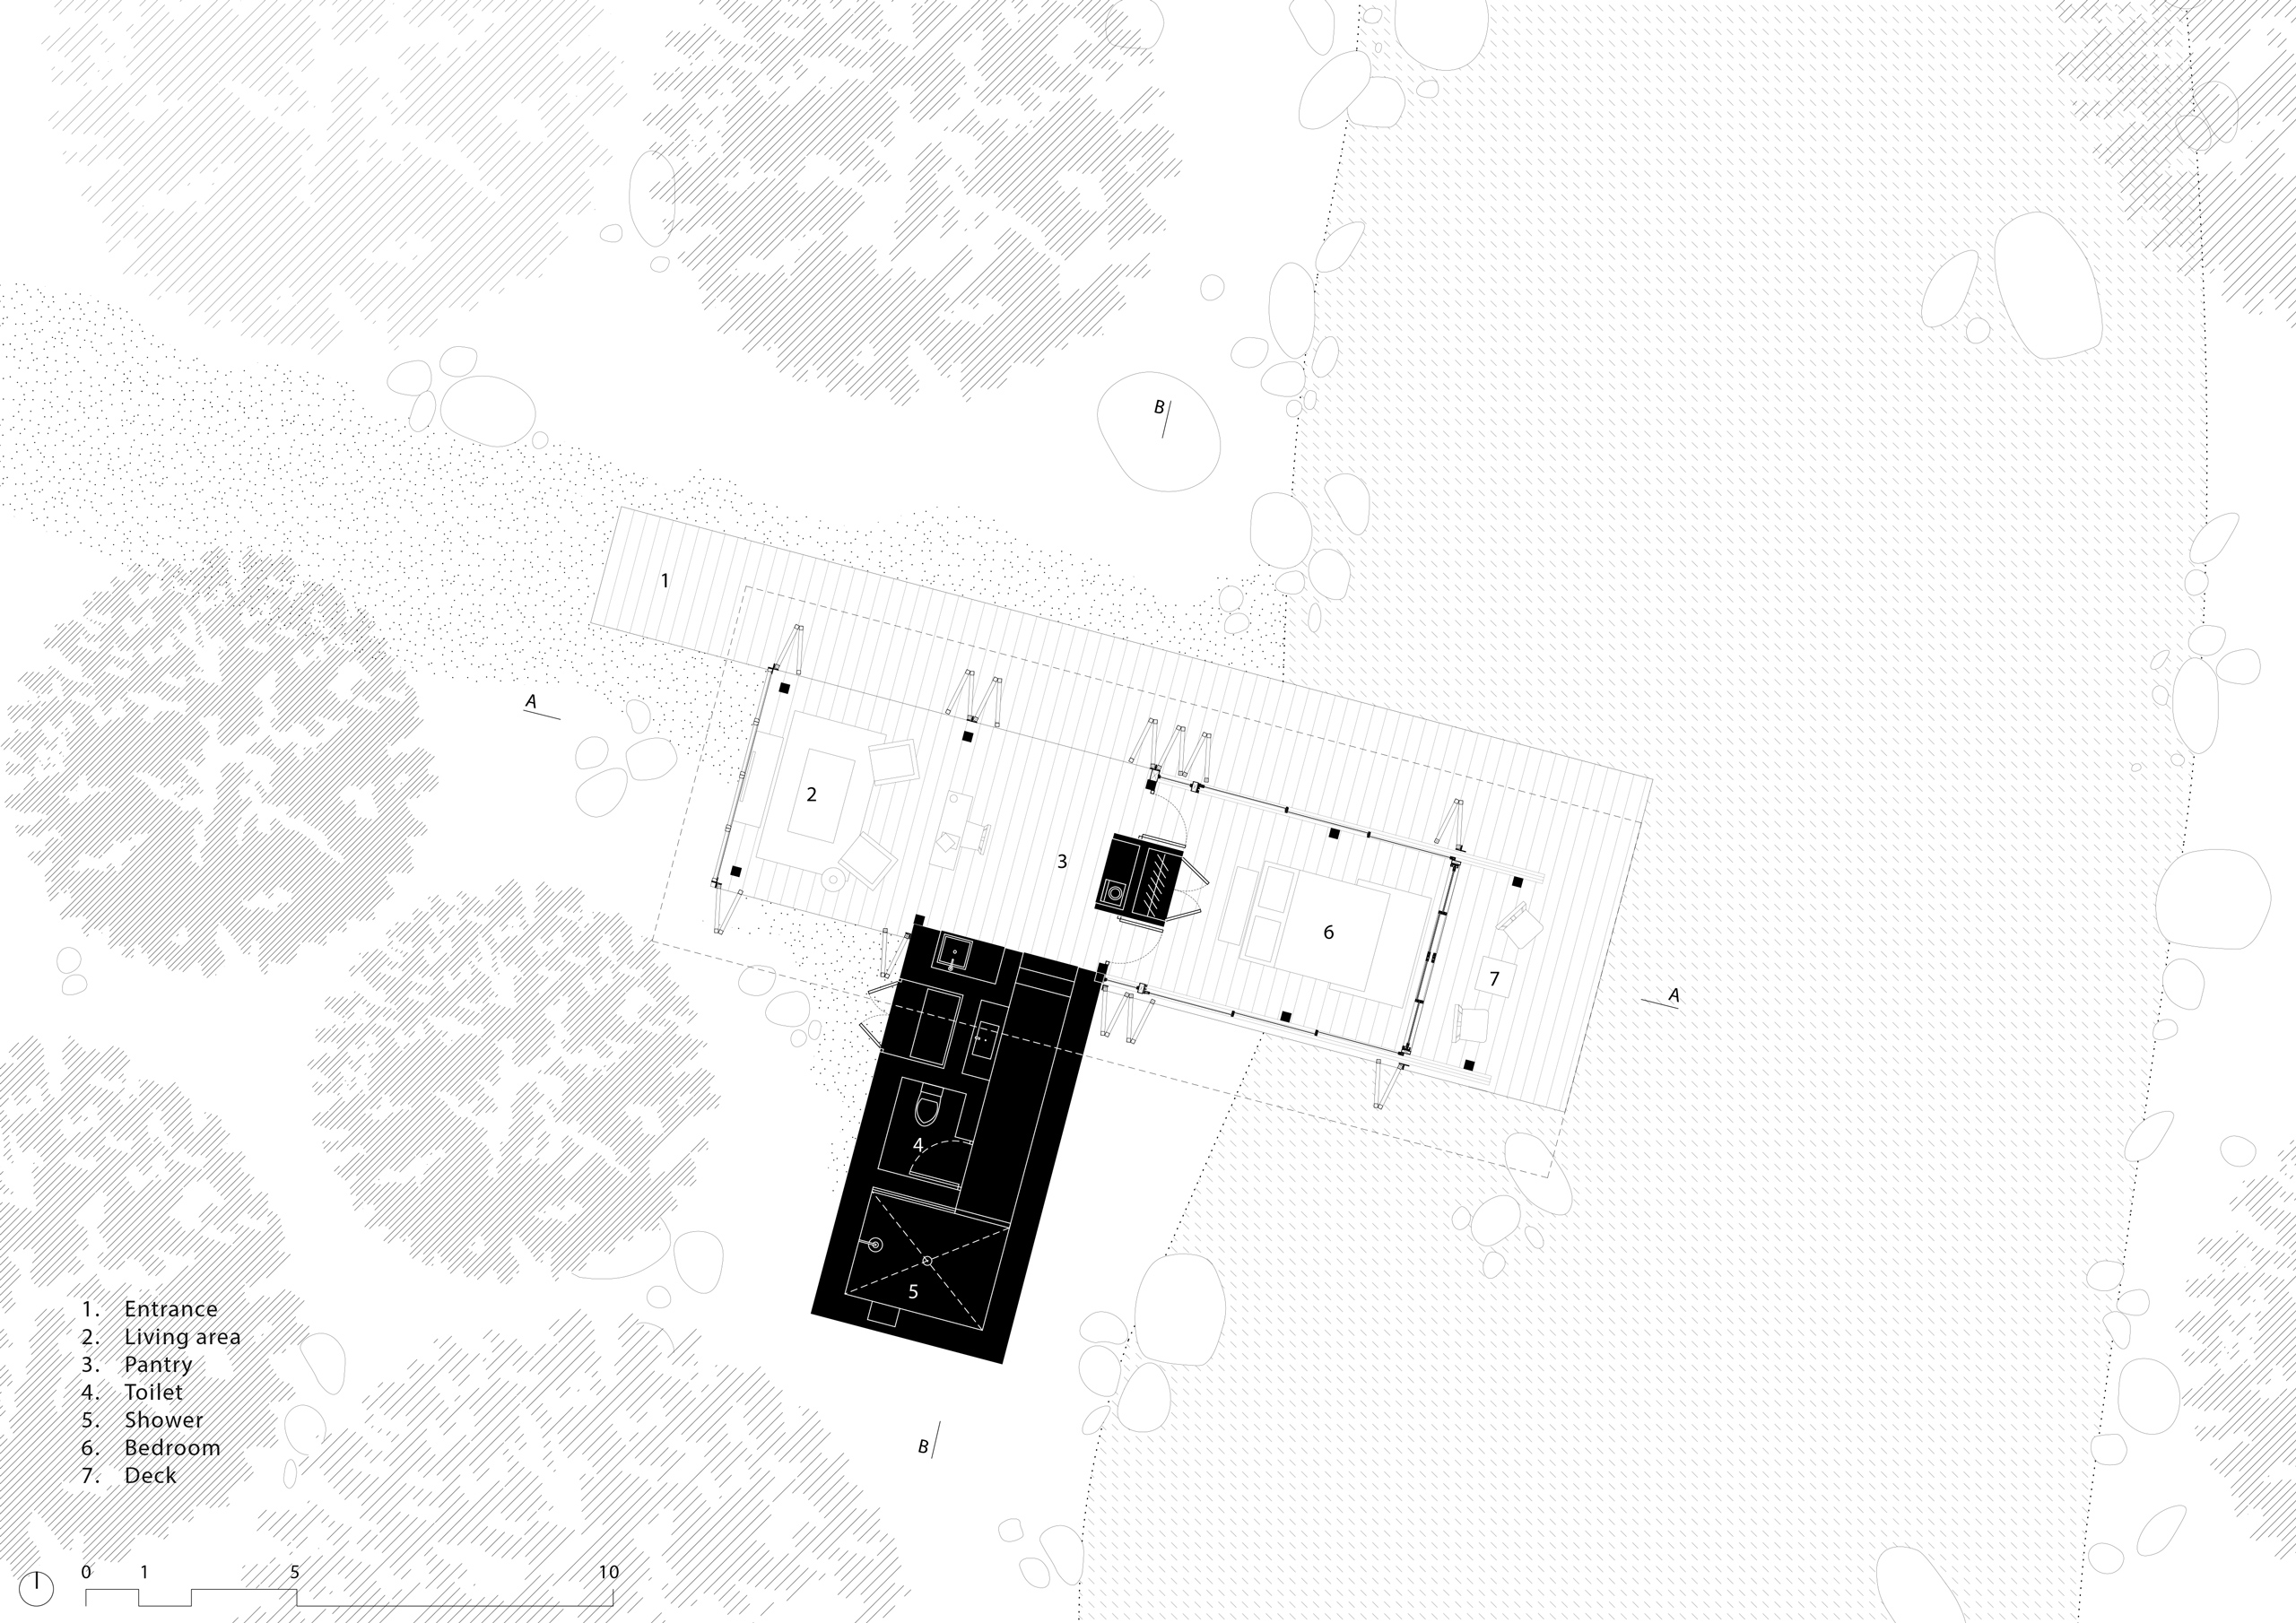 Floor plan of cabin of Sustainable Forest Eco Resort Andhra Pradesh